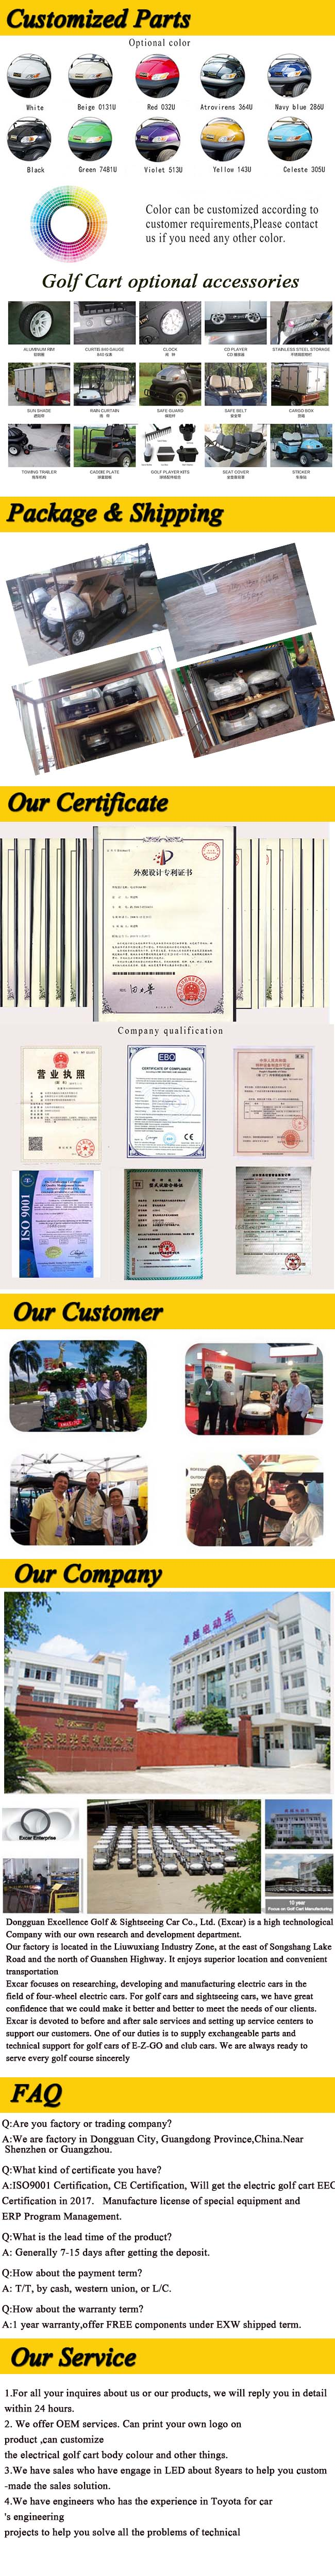 Fast Food Cart 2 Seaters with Ce Certificate